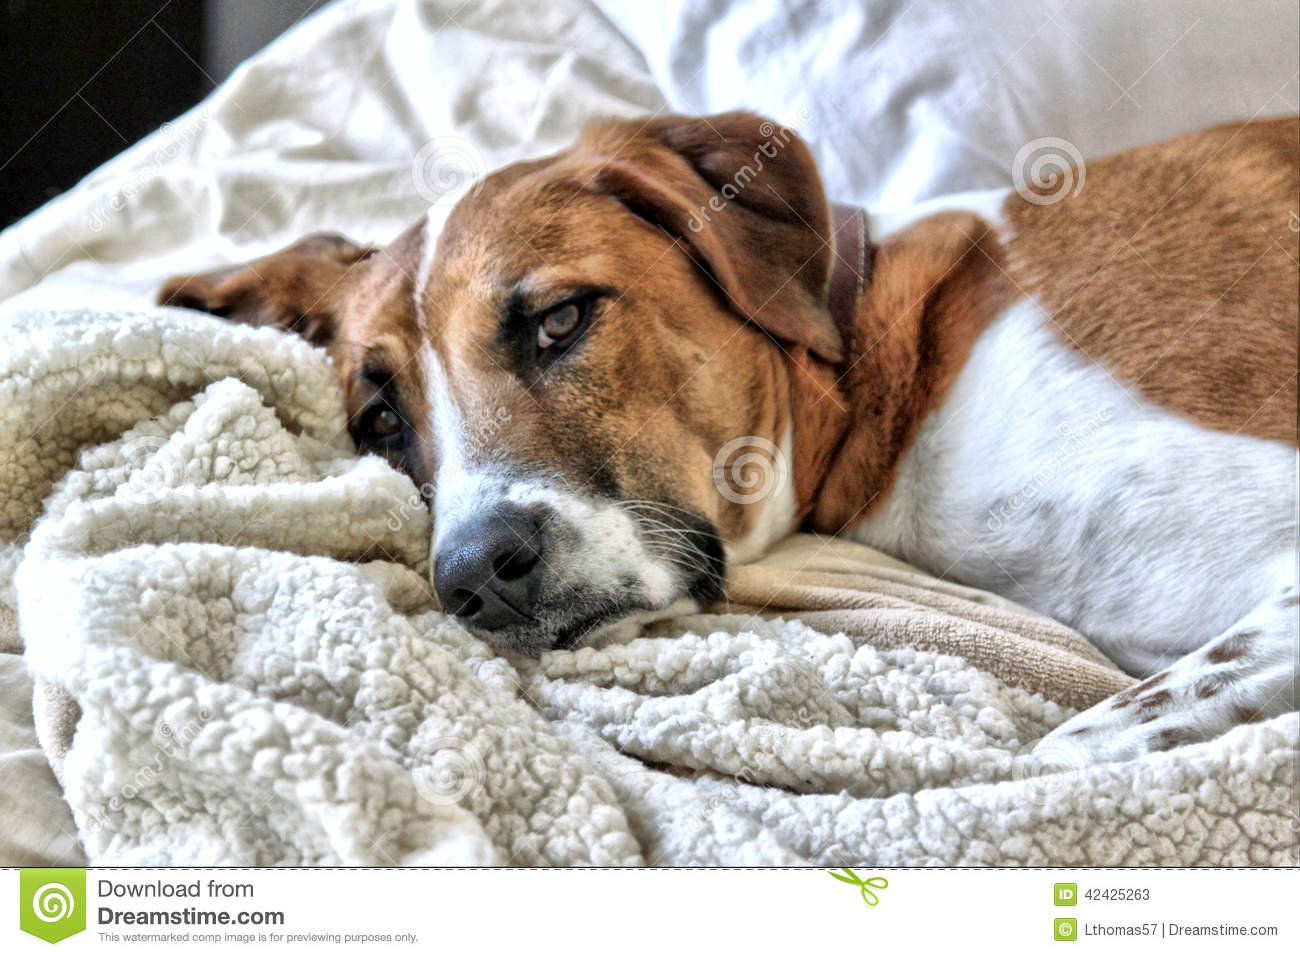 Catahoula Leopard Dog Rests On The Bed Stock Image - Image